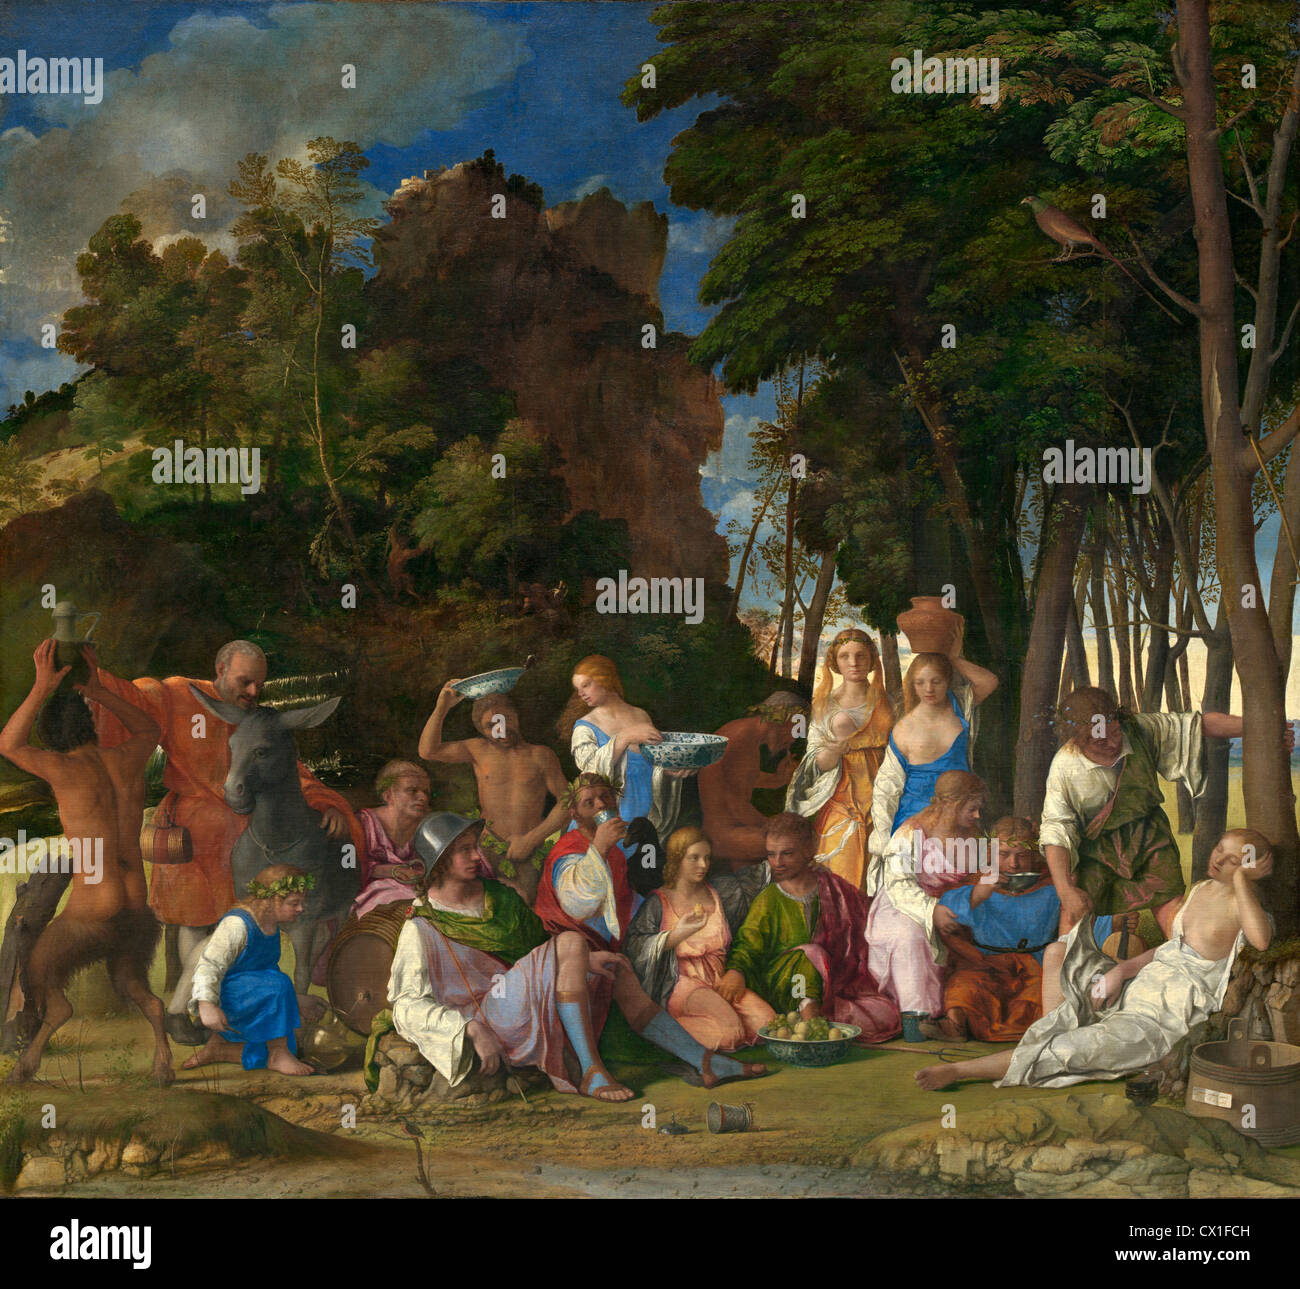 Giovanni Bellini and Titian (Italian, c. 1430/1435 - 1516 ), The Feast of the Gods, 1514/1529, oil on canvas - Stock Image